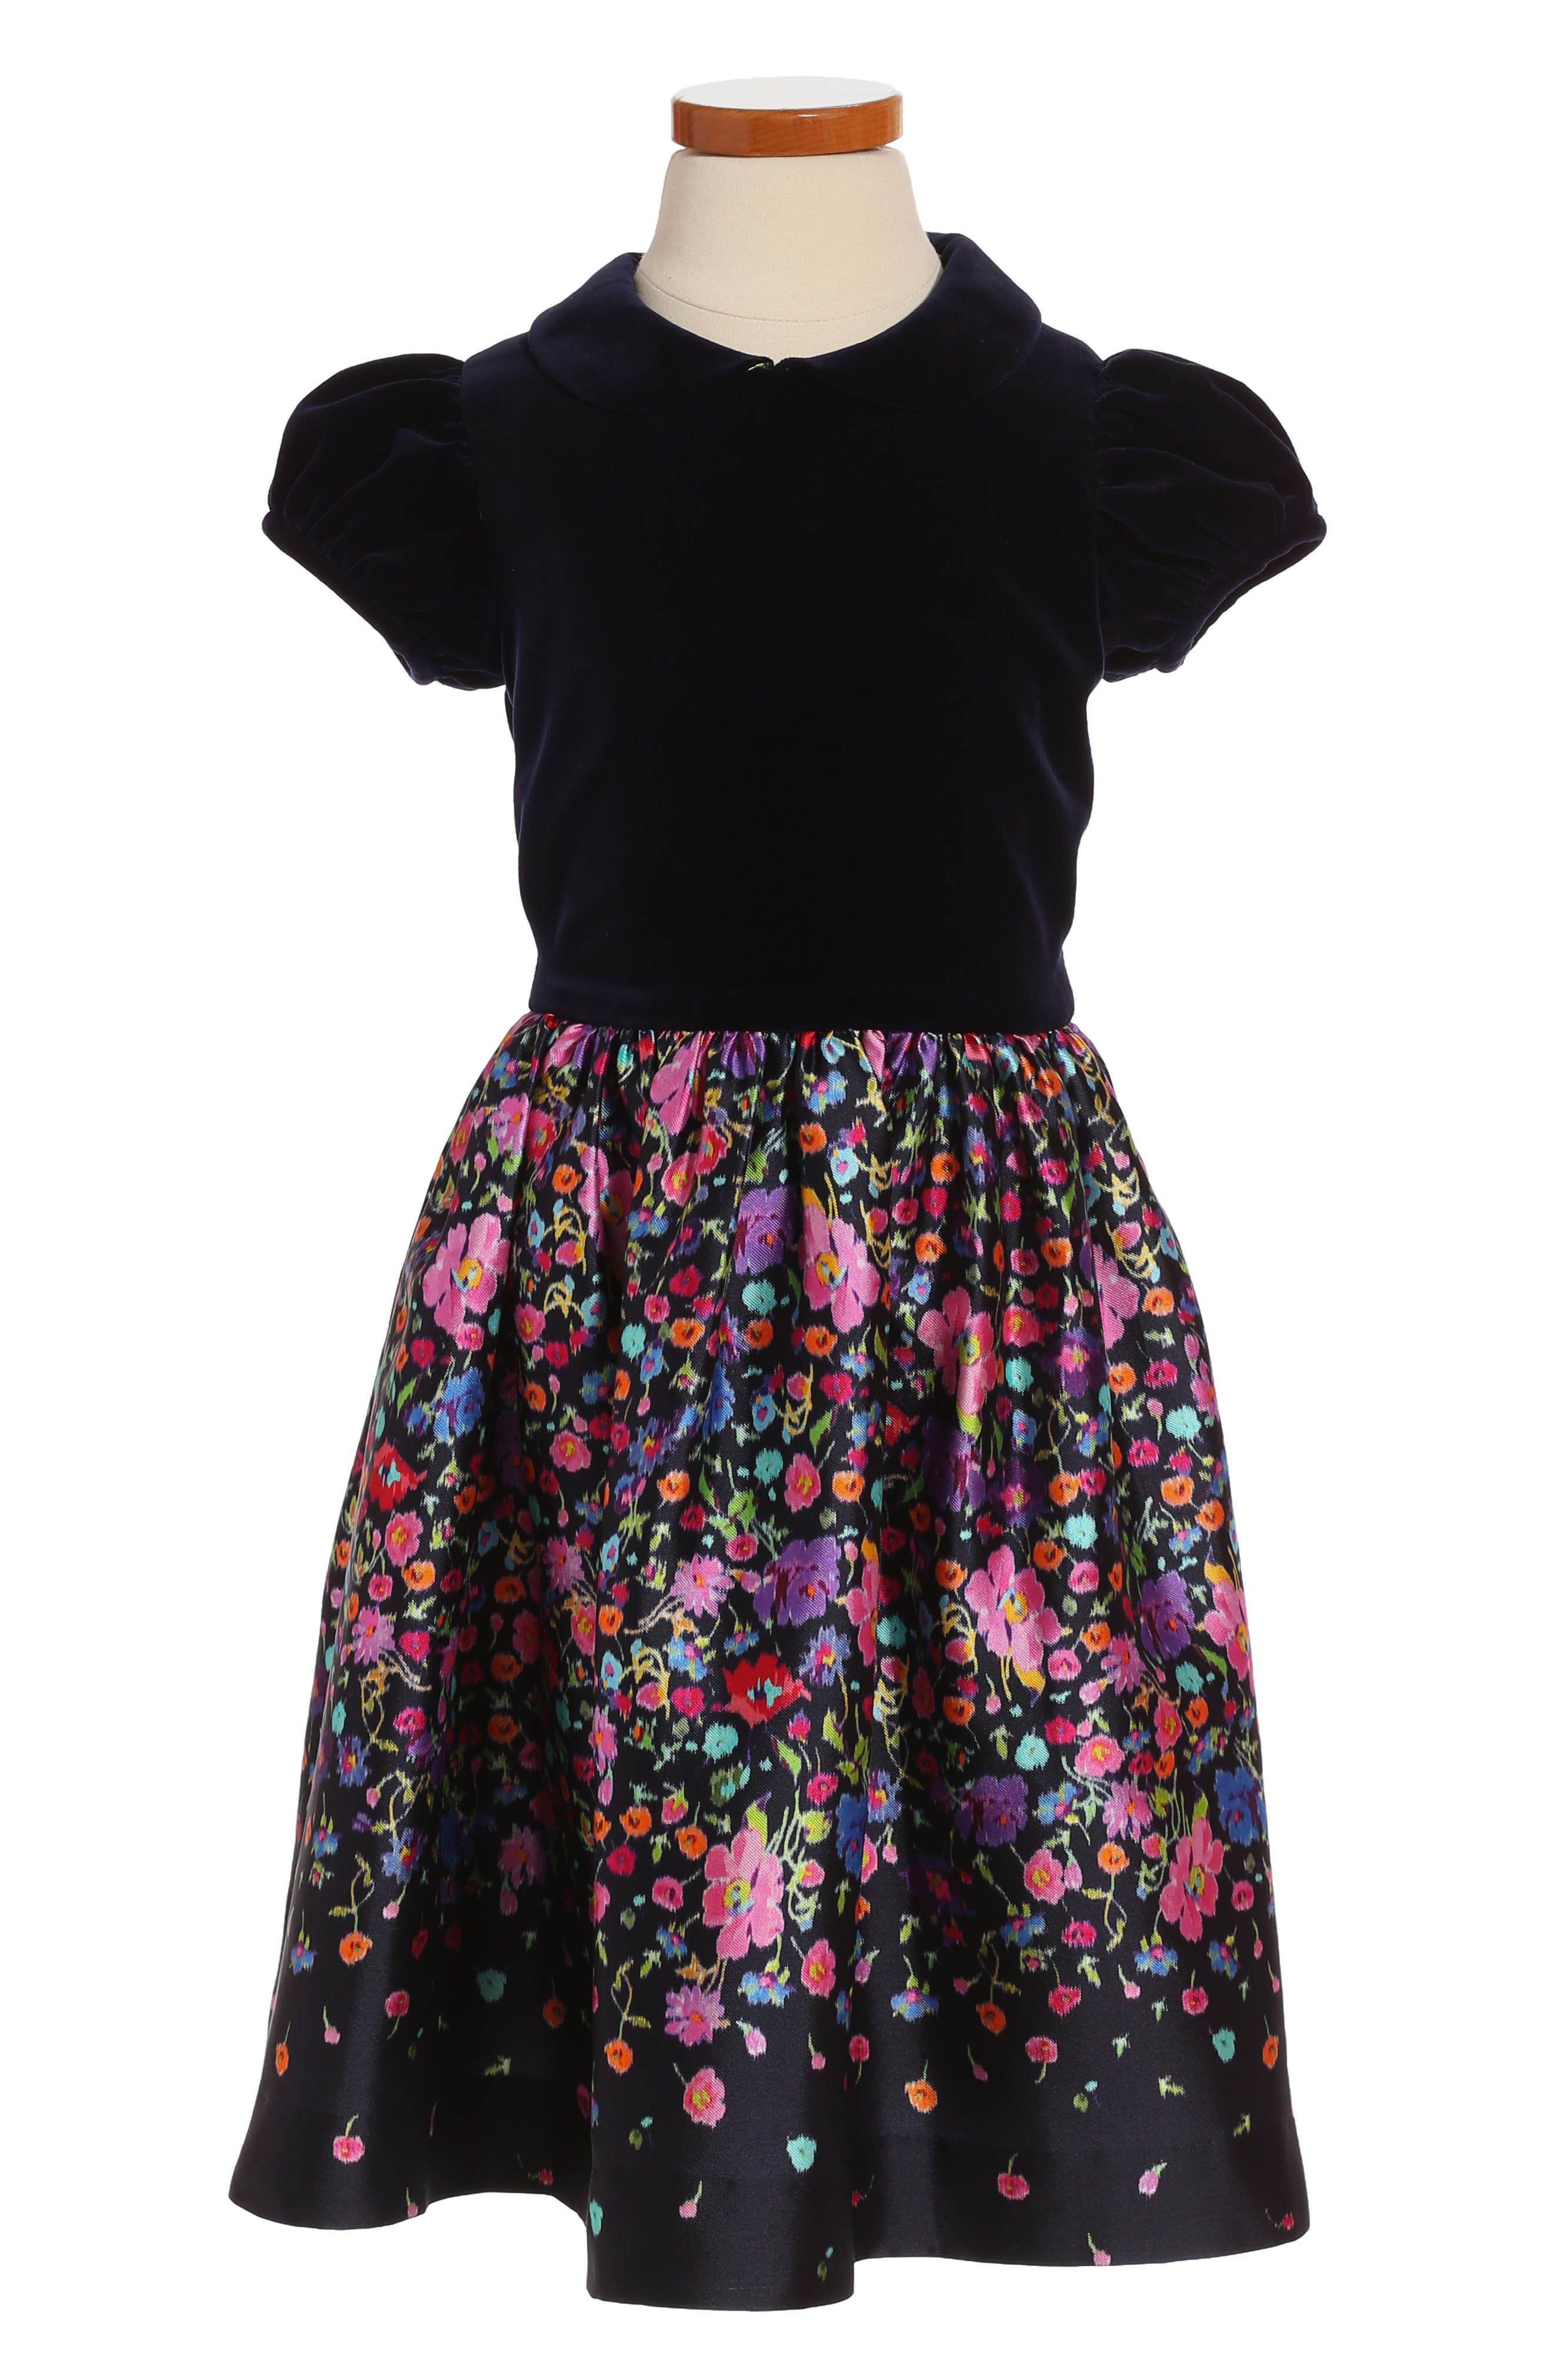 Alternate Image 1 Selected - Oscar de la Renta Chine Garden Mikado Party Dress (Toddler Girls & Little Girls)